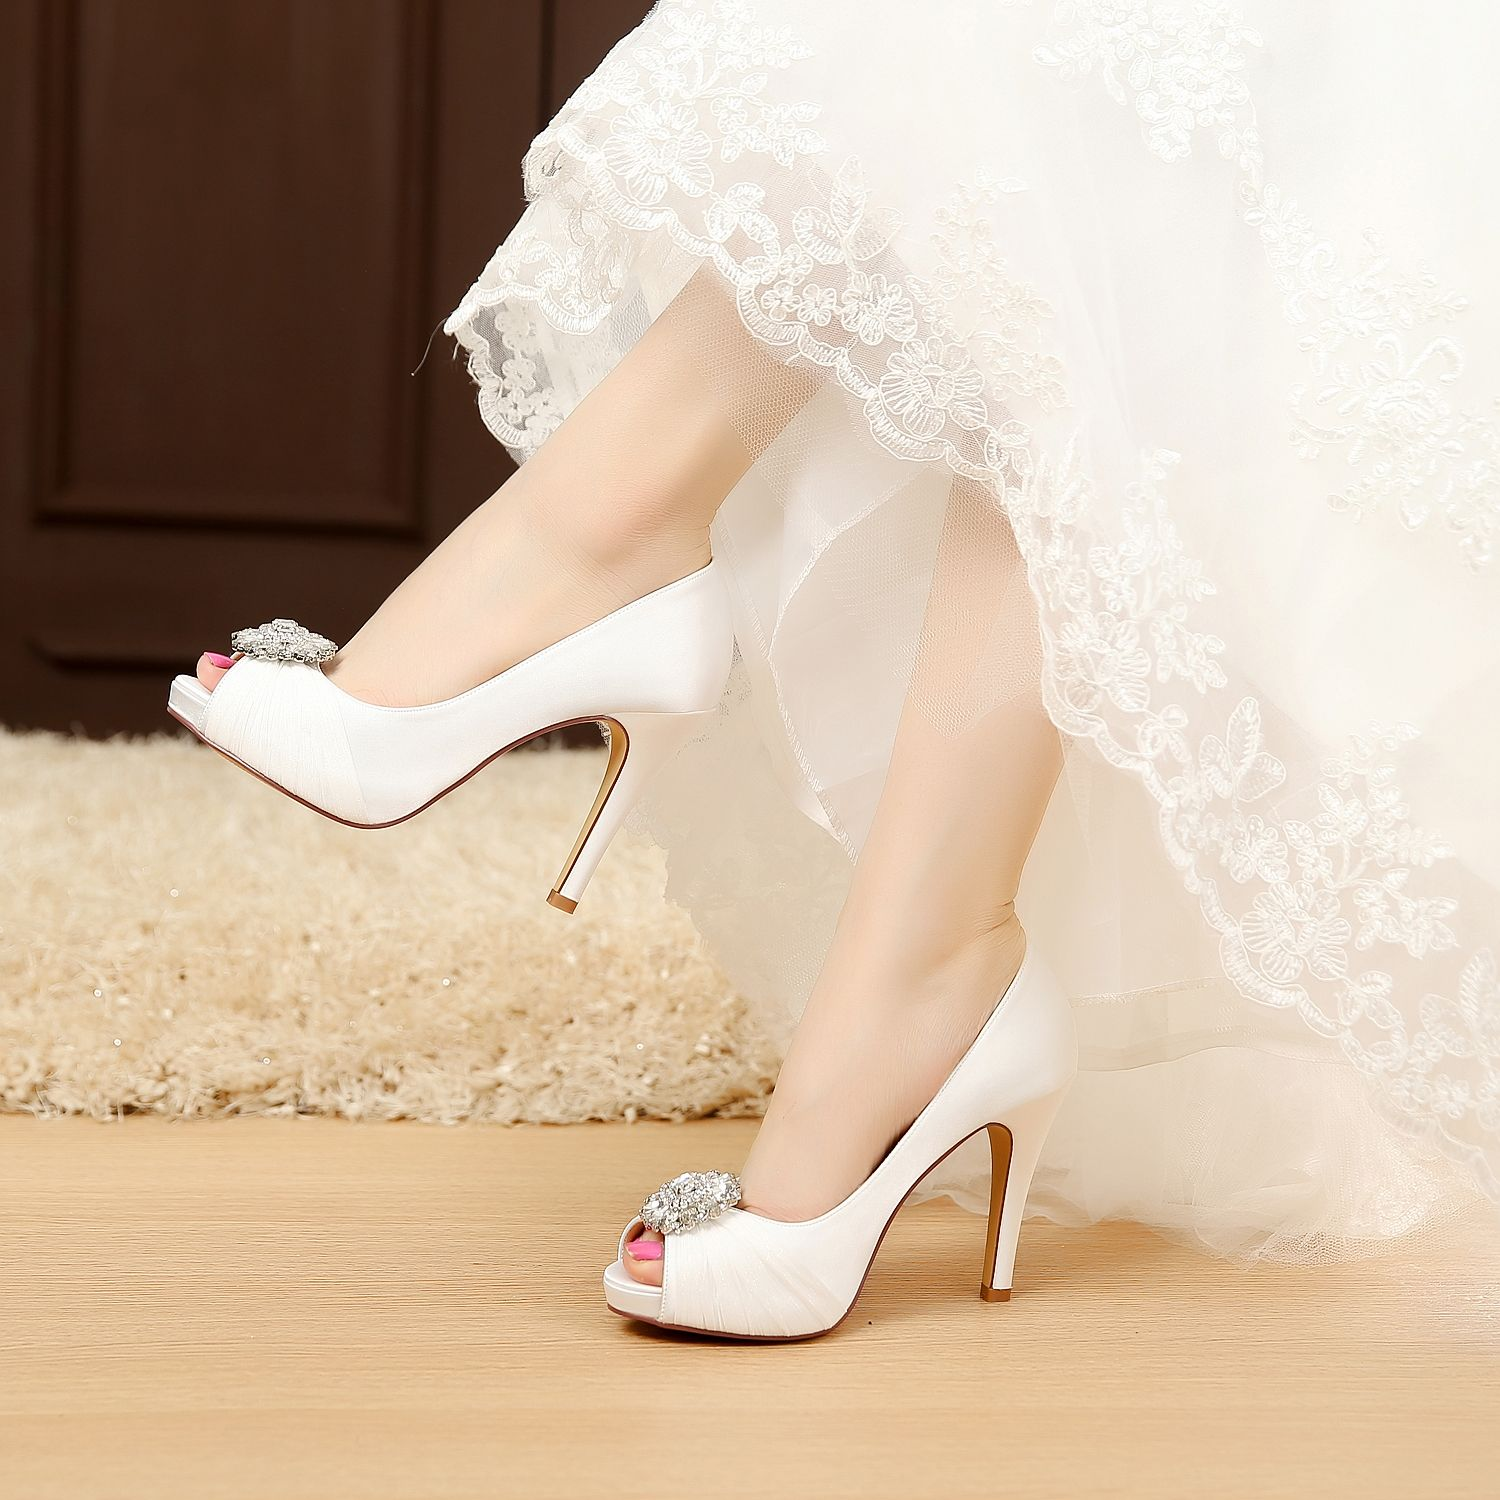 """satin Heel measures approximately 4.5 inches"""" brid"""